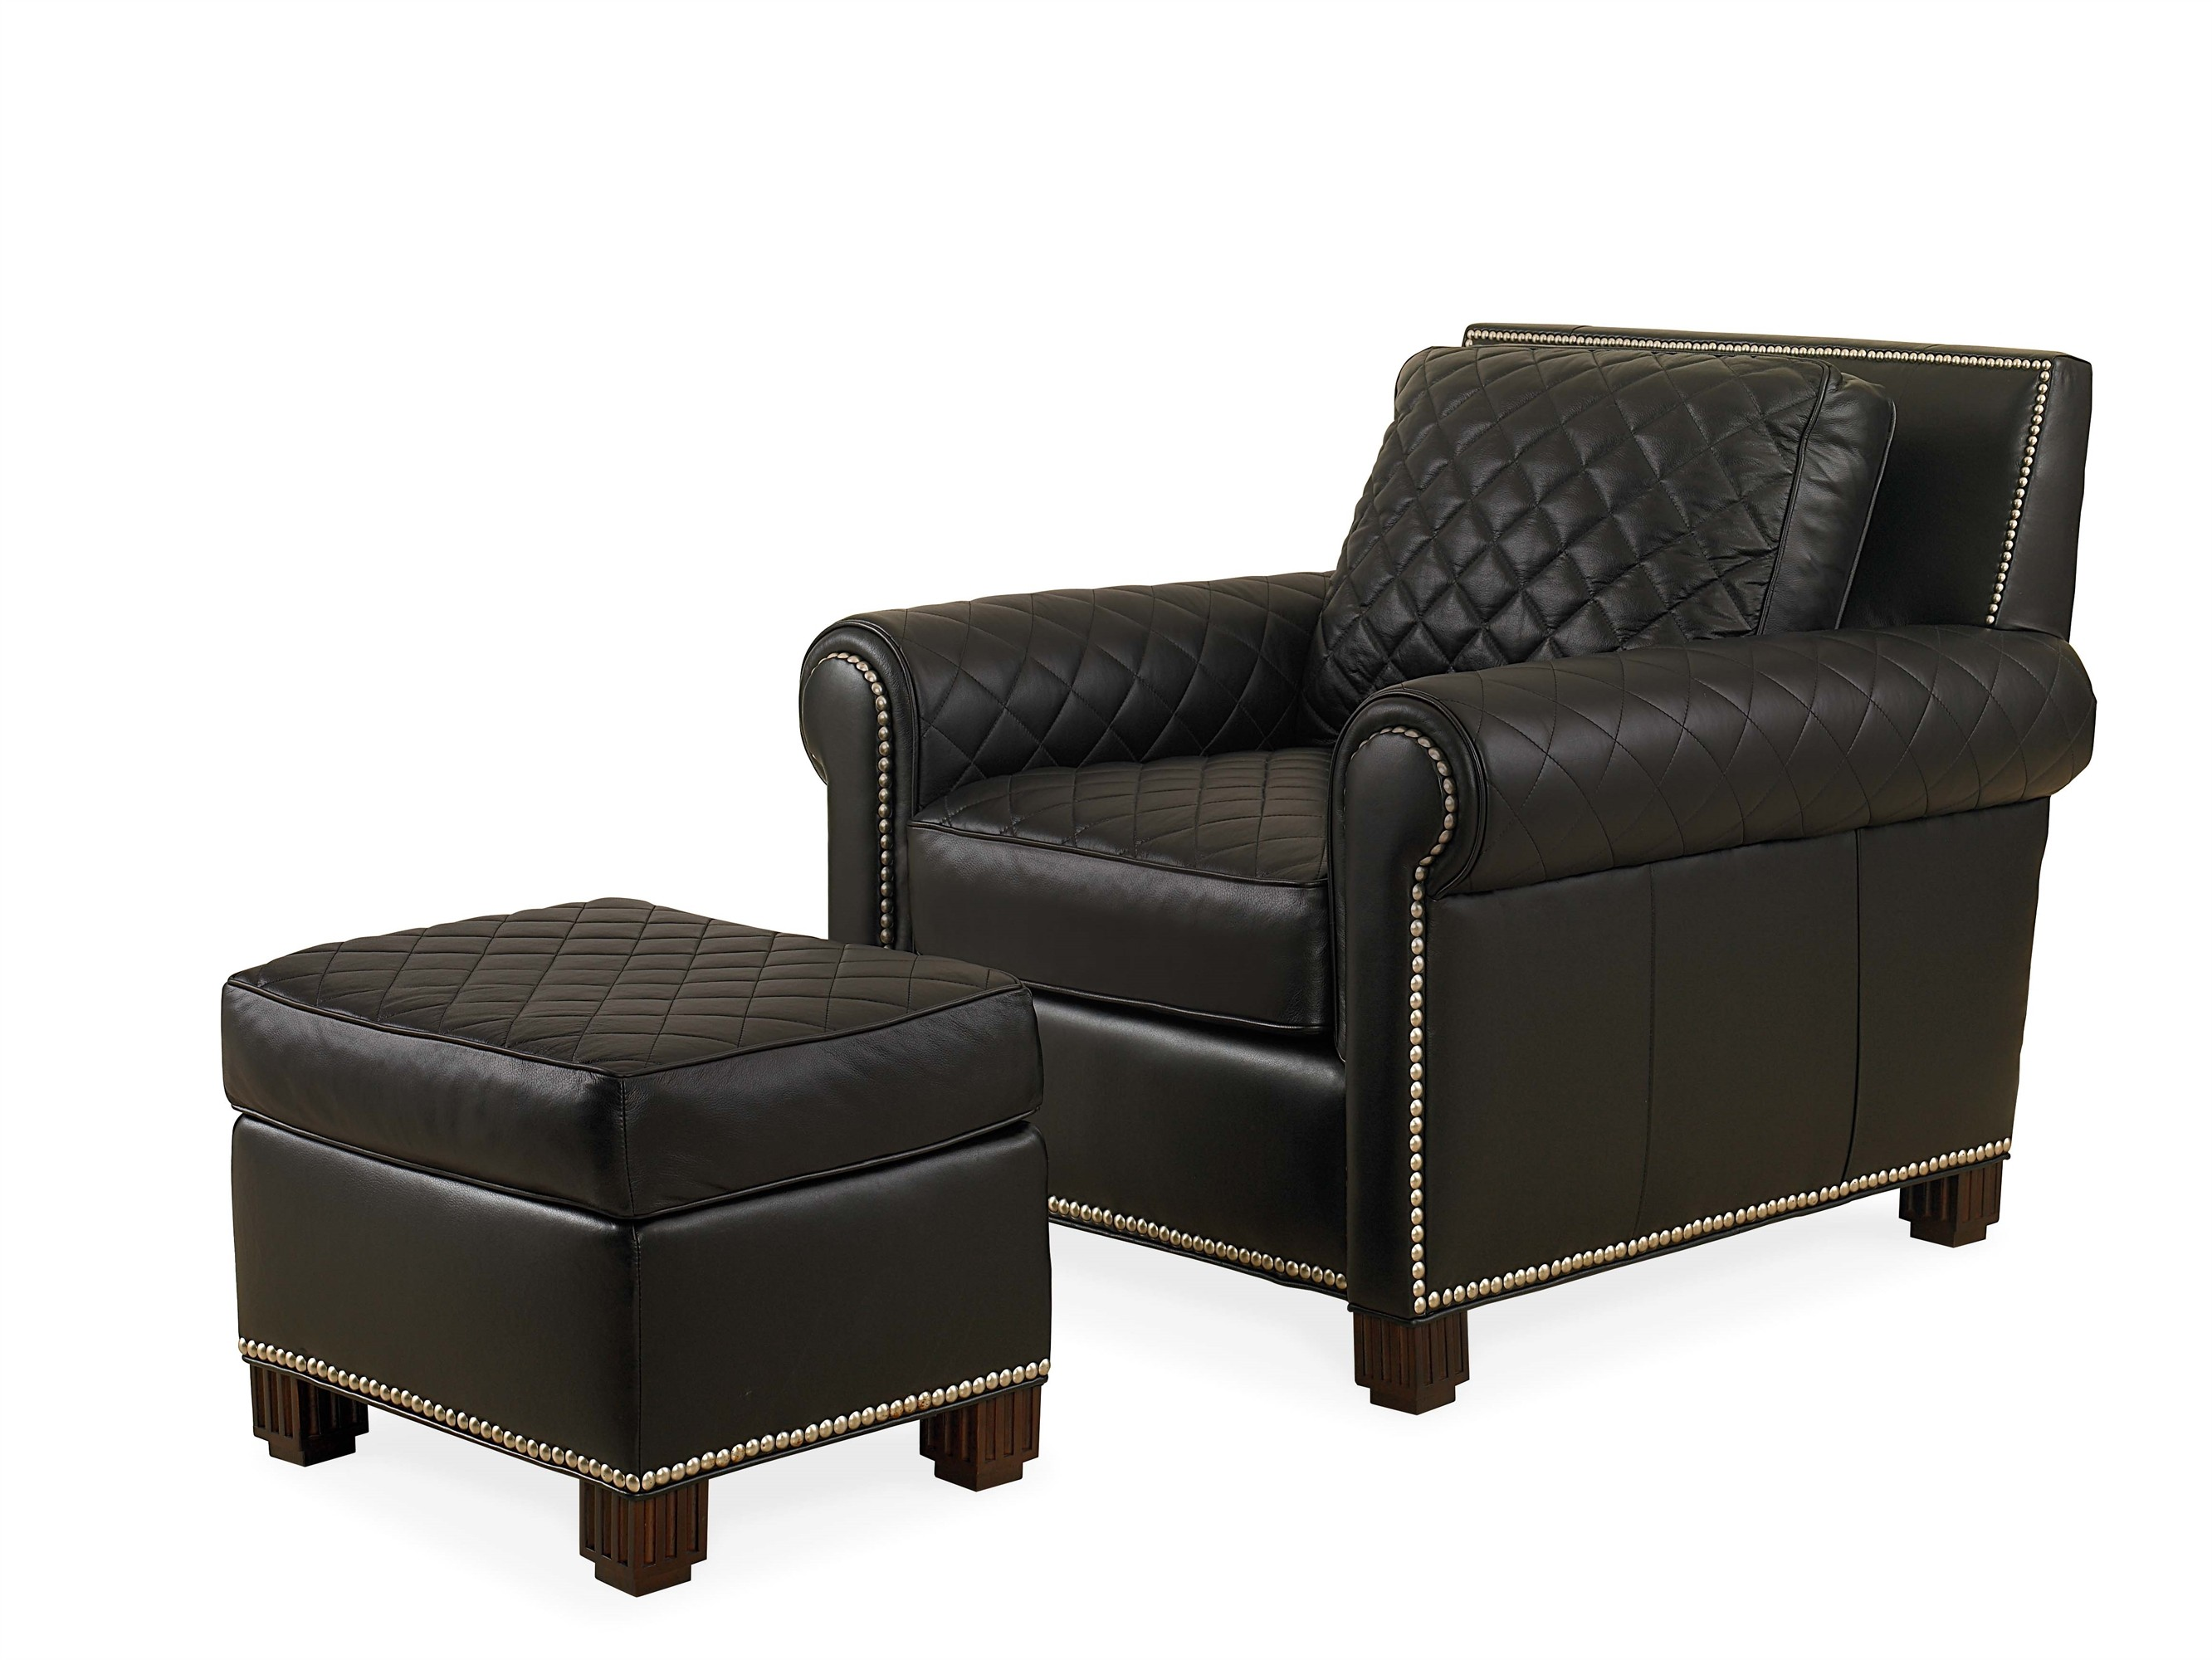 large leather chair with ottoman desk amazon prime